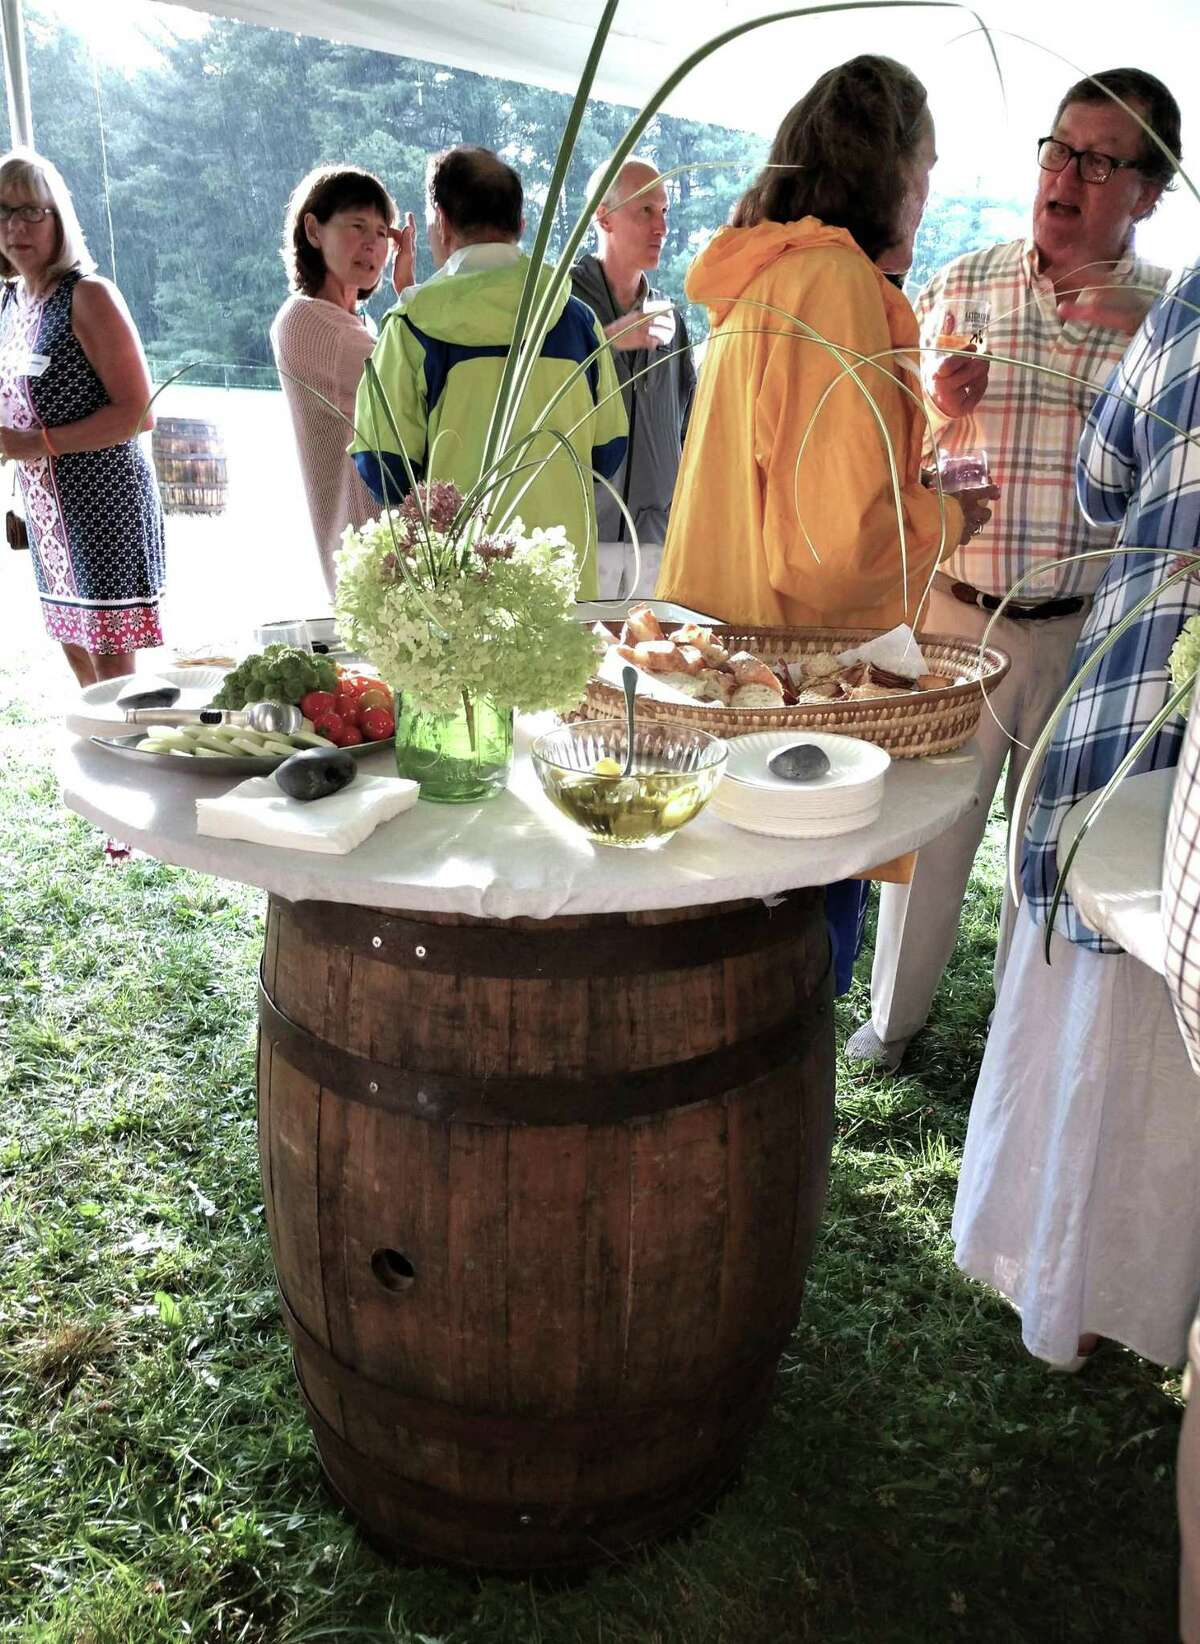 Guests gathered around a barrel in the cocktail hour tent.